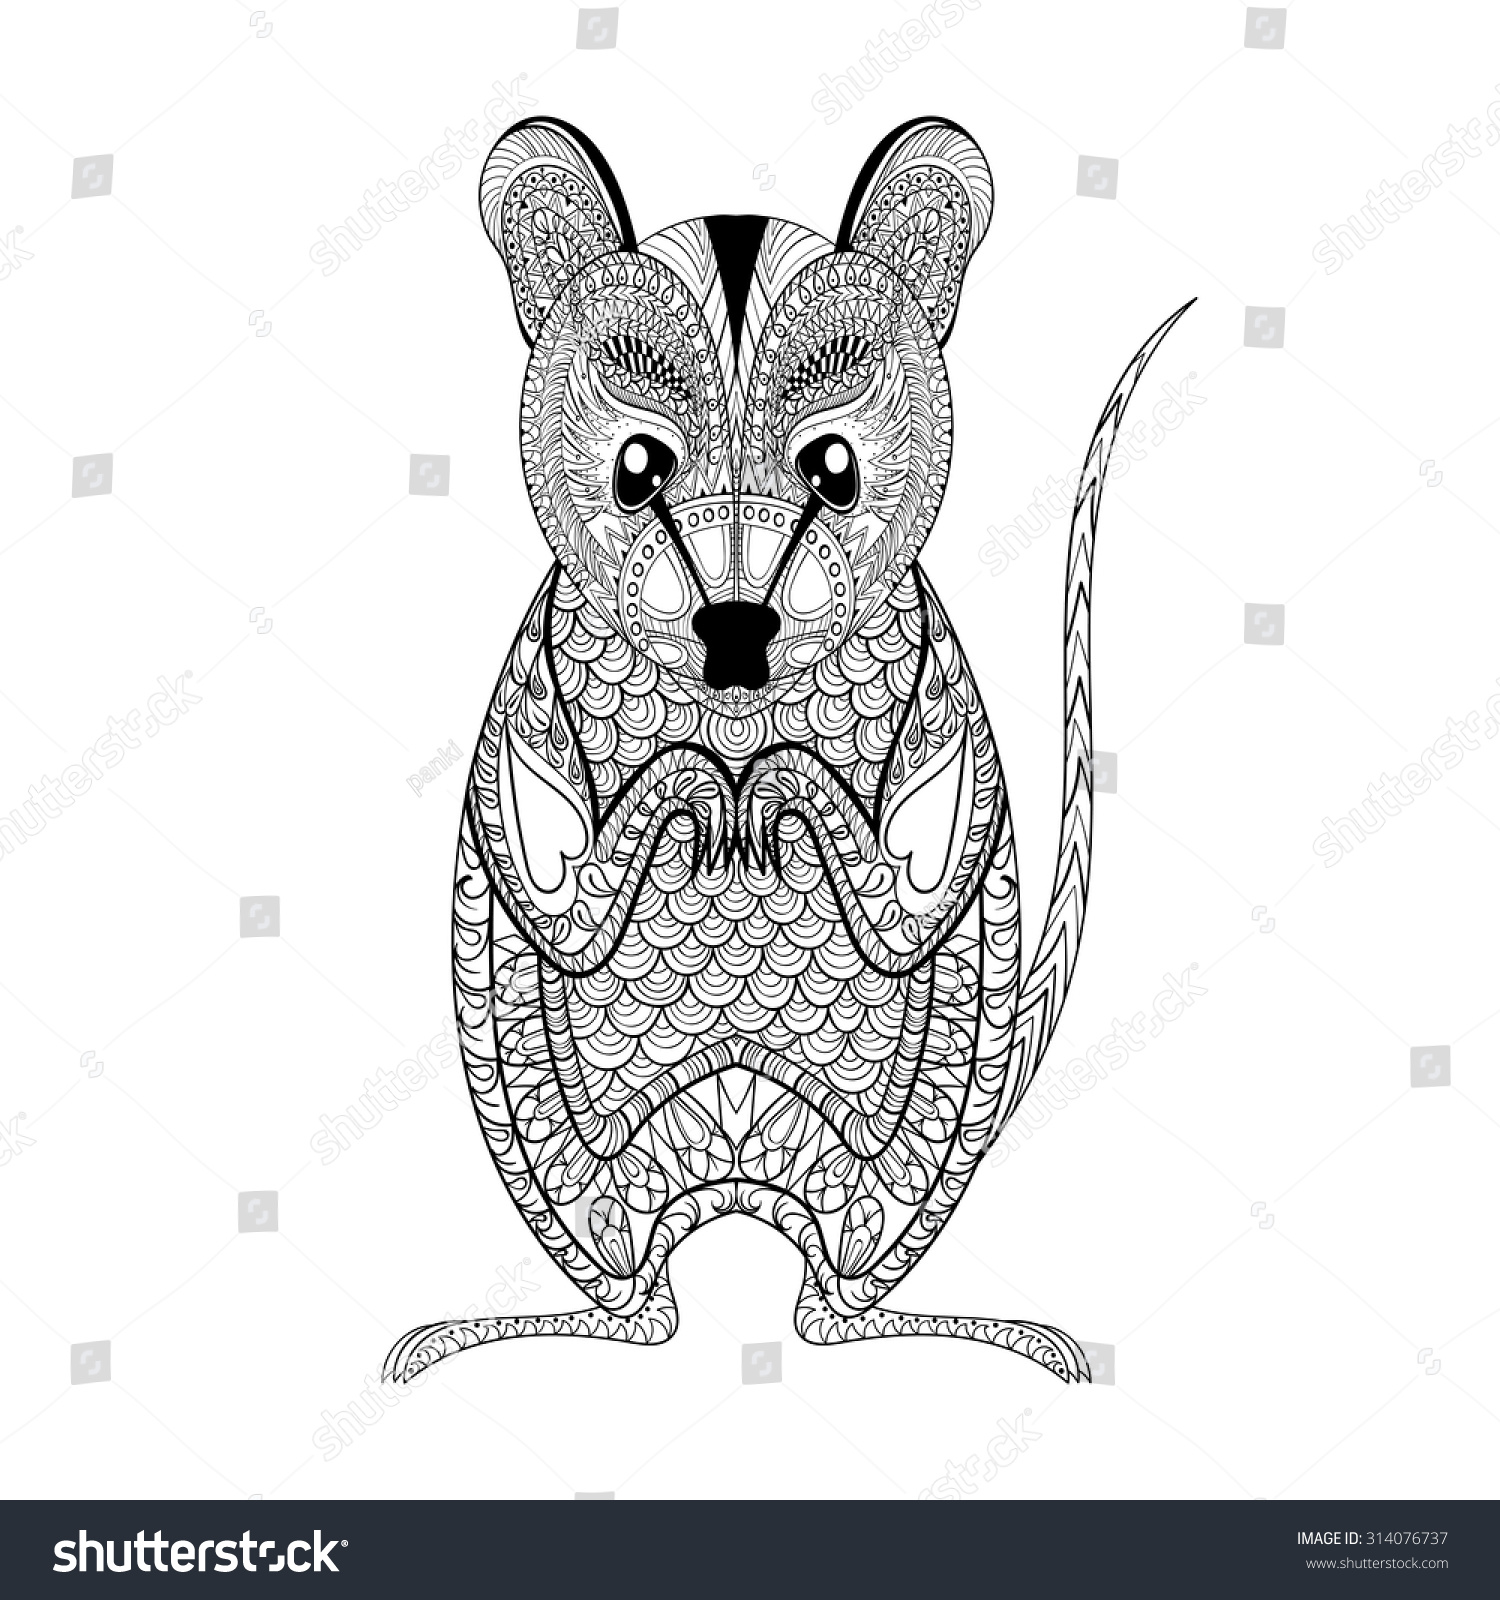 Anti stress coloring therapy - Zentangle Possum Totem For Adult Anti Stress Coloring Page For Art Therapy Illustration In Doodle